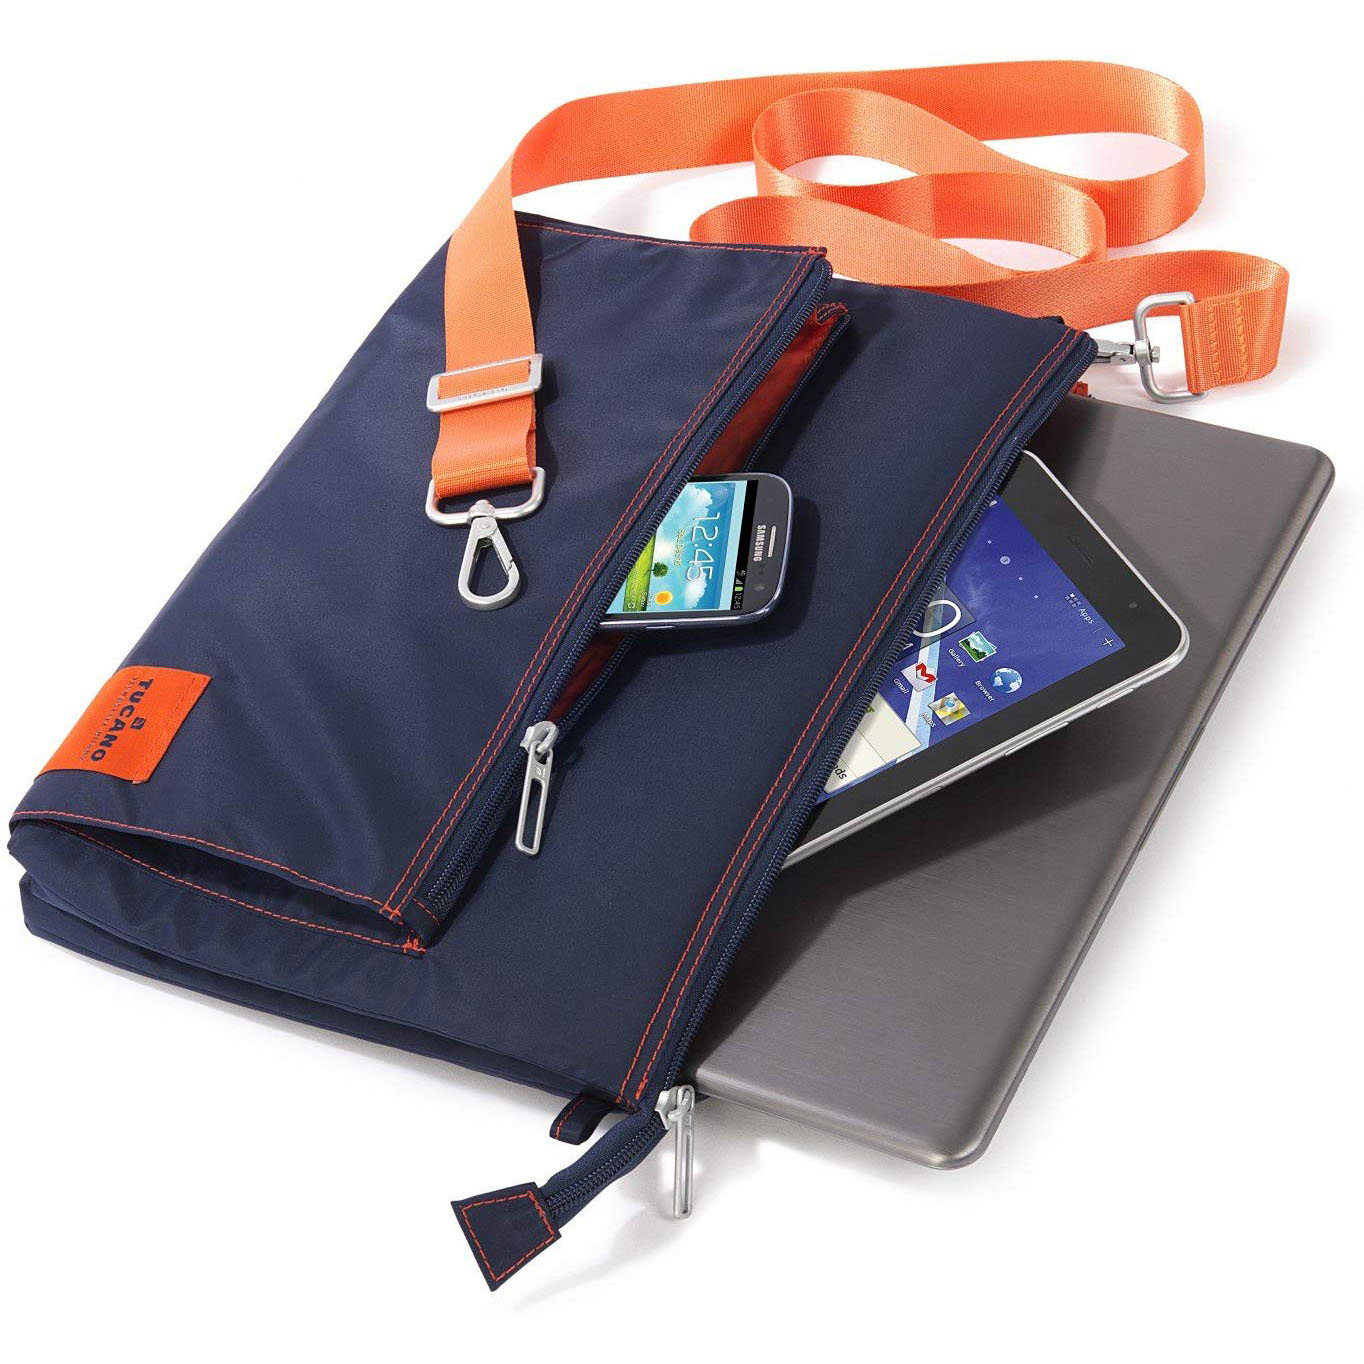 Tucano BLAM-B Lampo Slim Computer Bag | Tablet | Smartphone | Ultrabook/Notebook